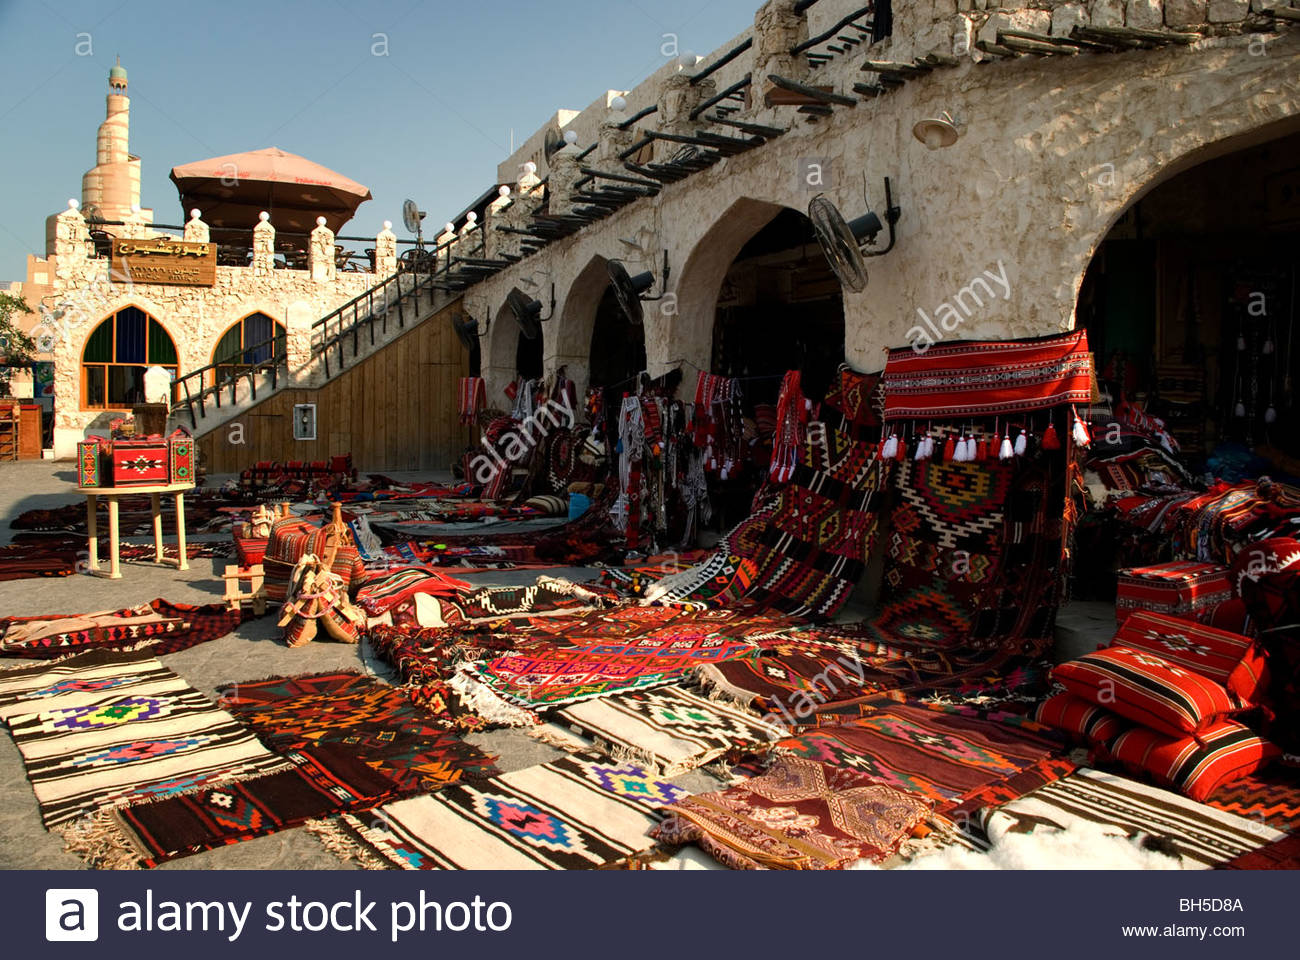 Souq Waqif Doha, Traditional middle eastern carpets for sale in souq Waqif, Doha ...